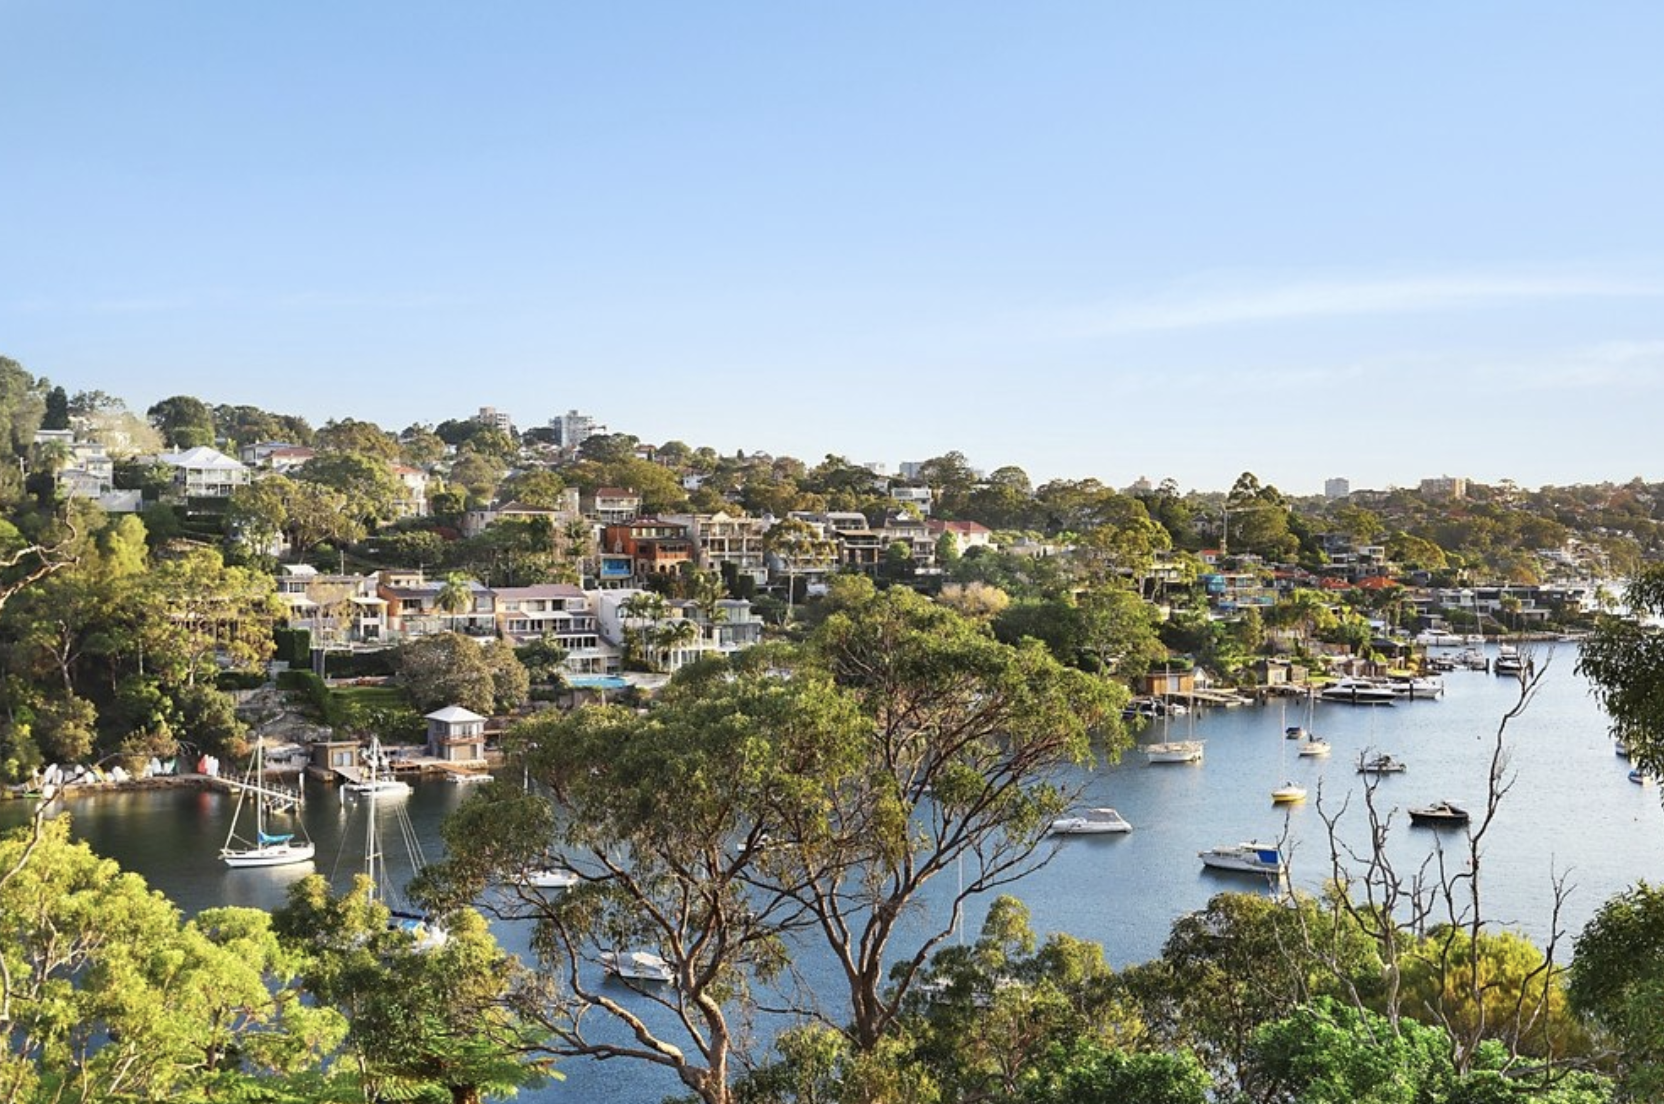 The worst act of tree vandalism in a decade has occurred in the Quakers Bay area of Mosman.